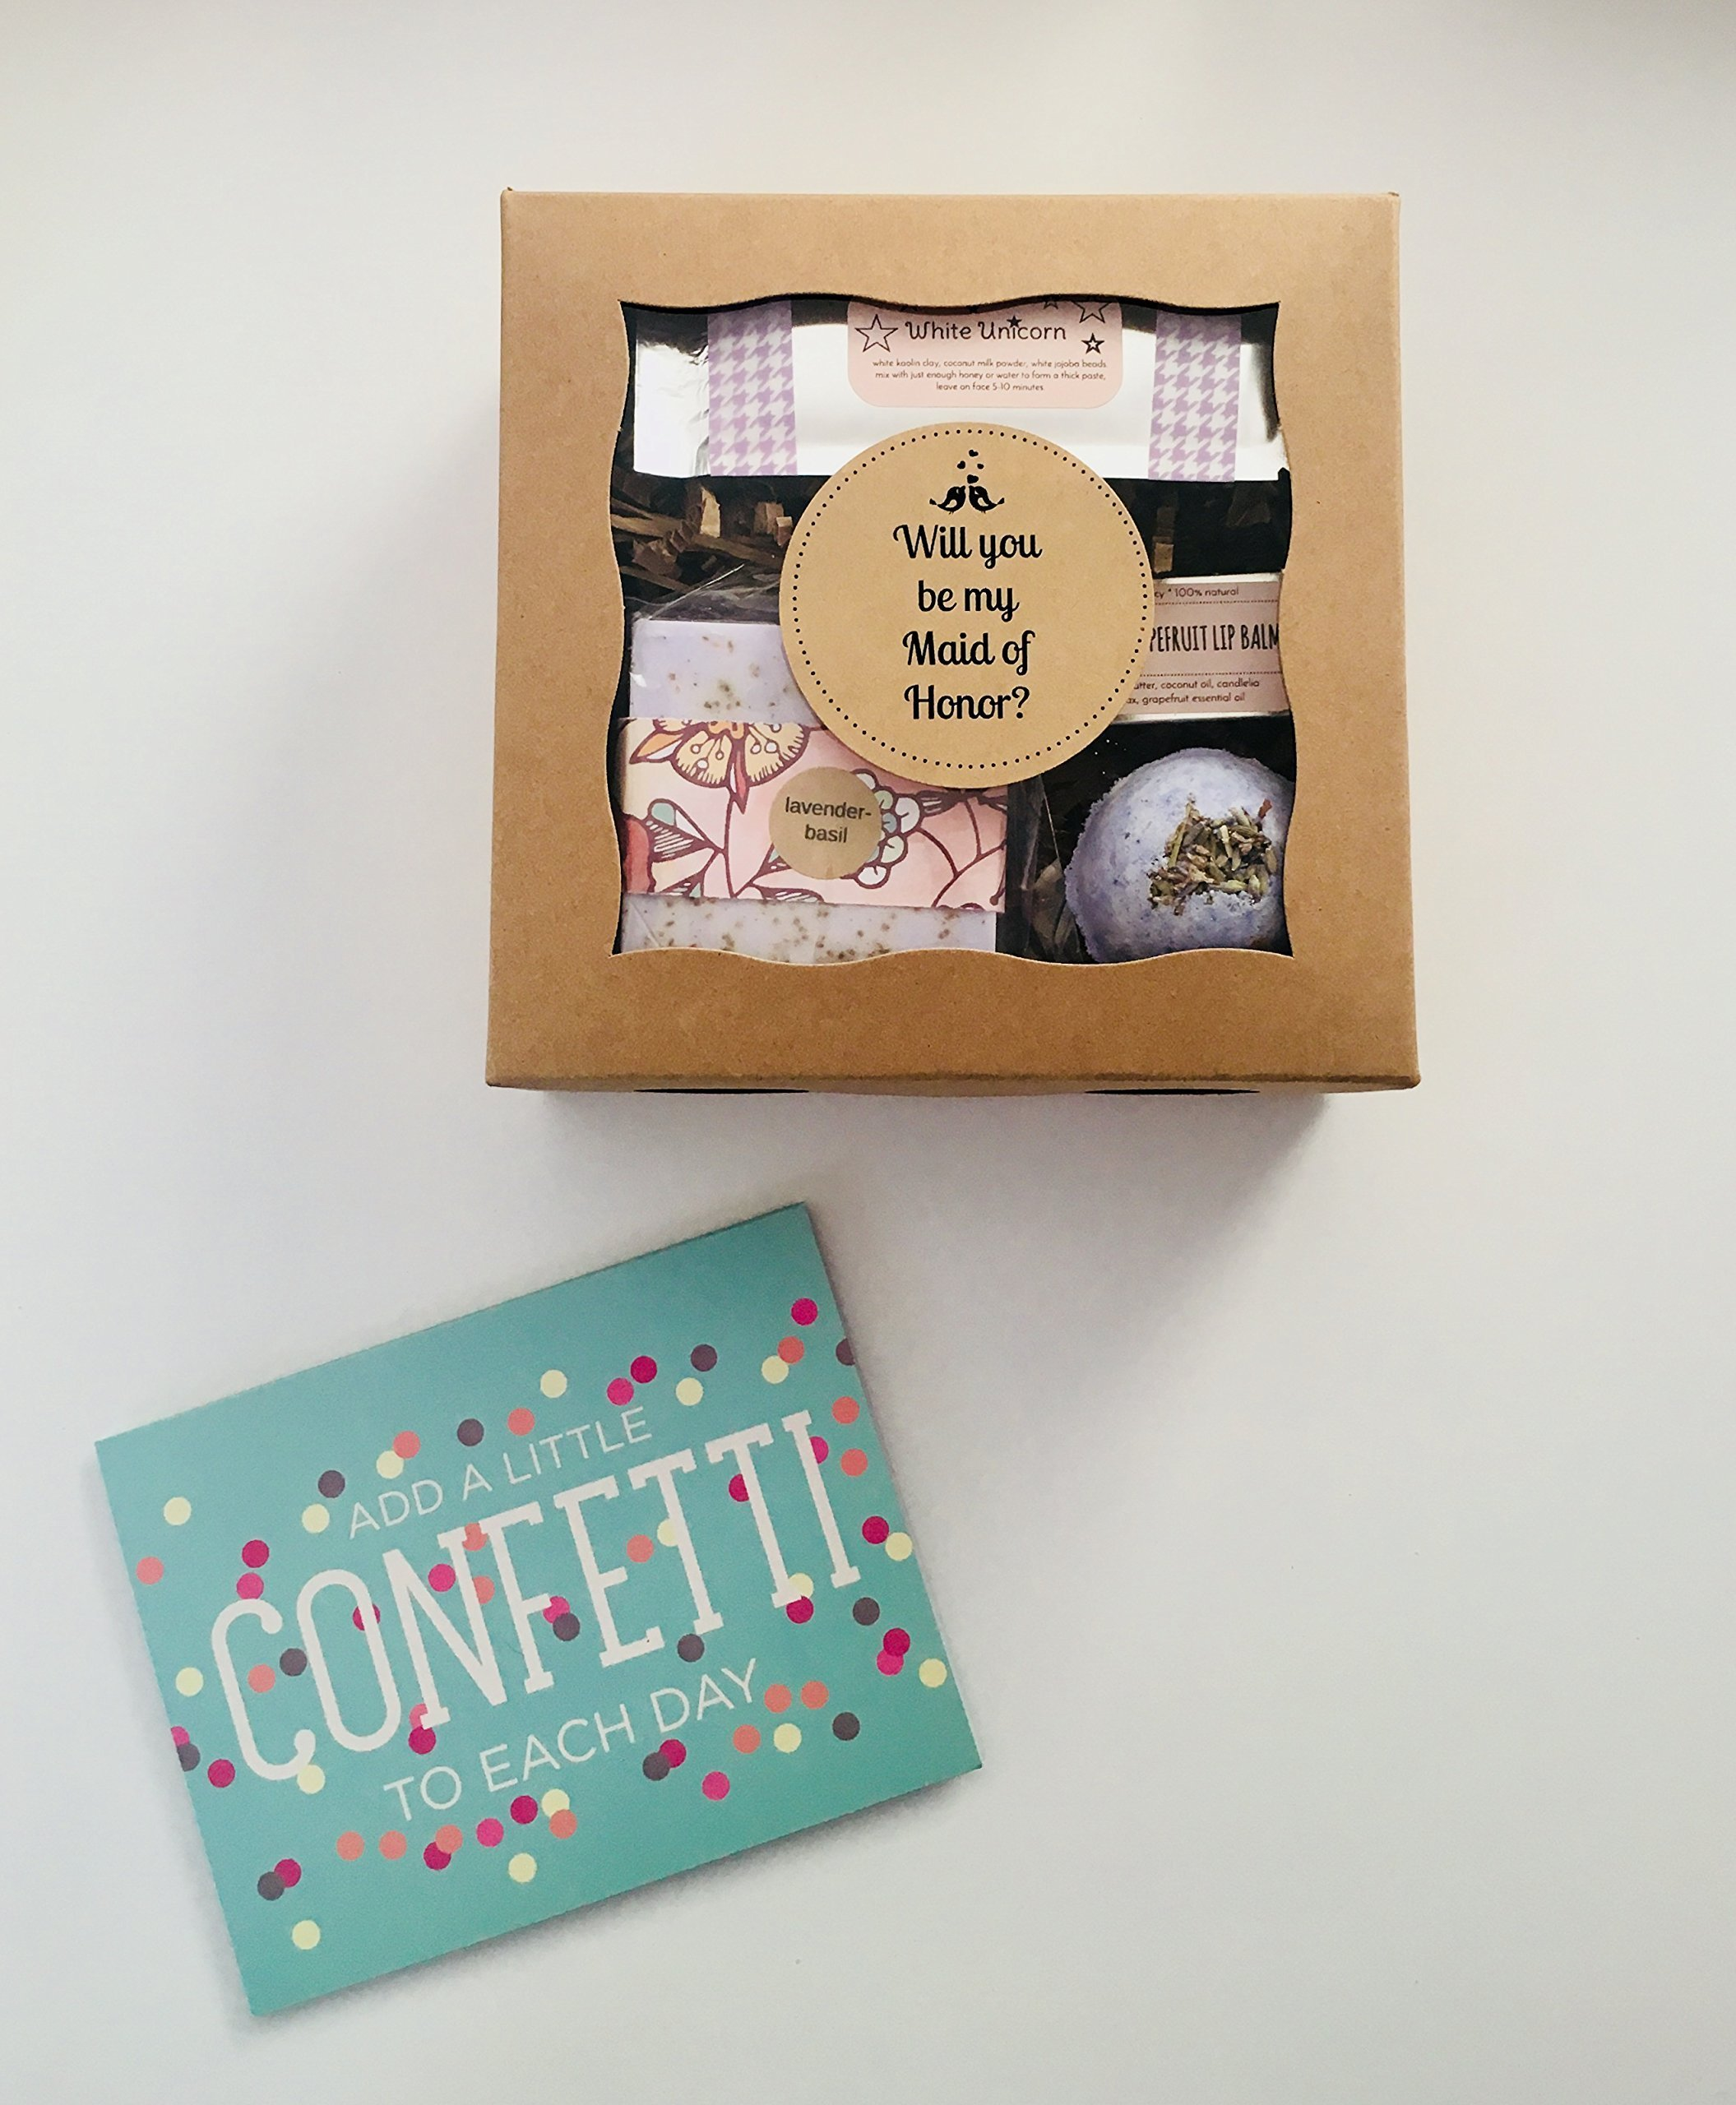 WILL YOU BE MY MAID OF HONOR? proposal box and card